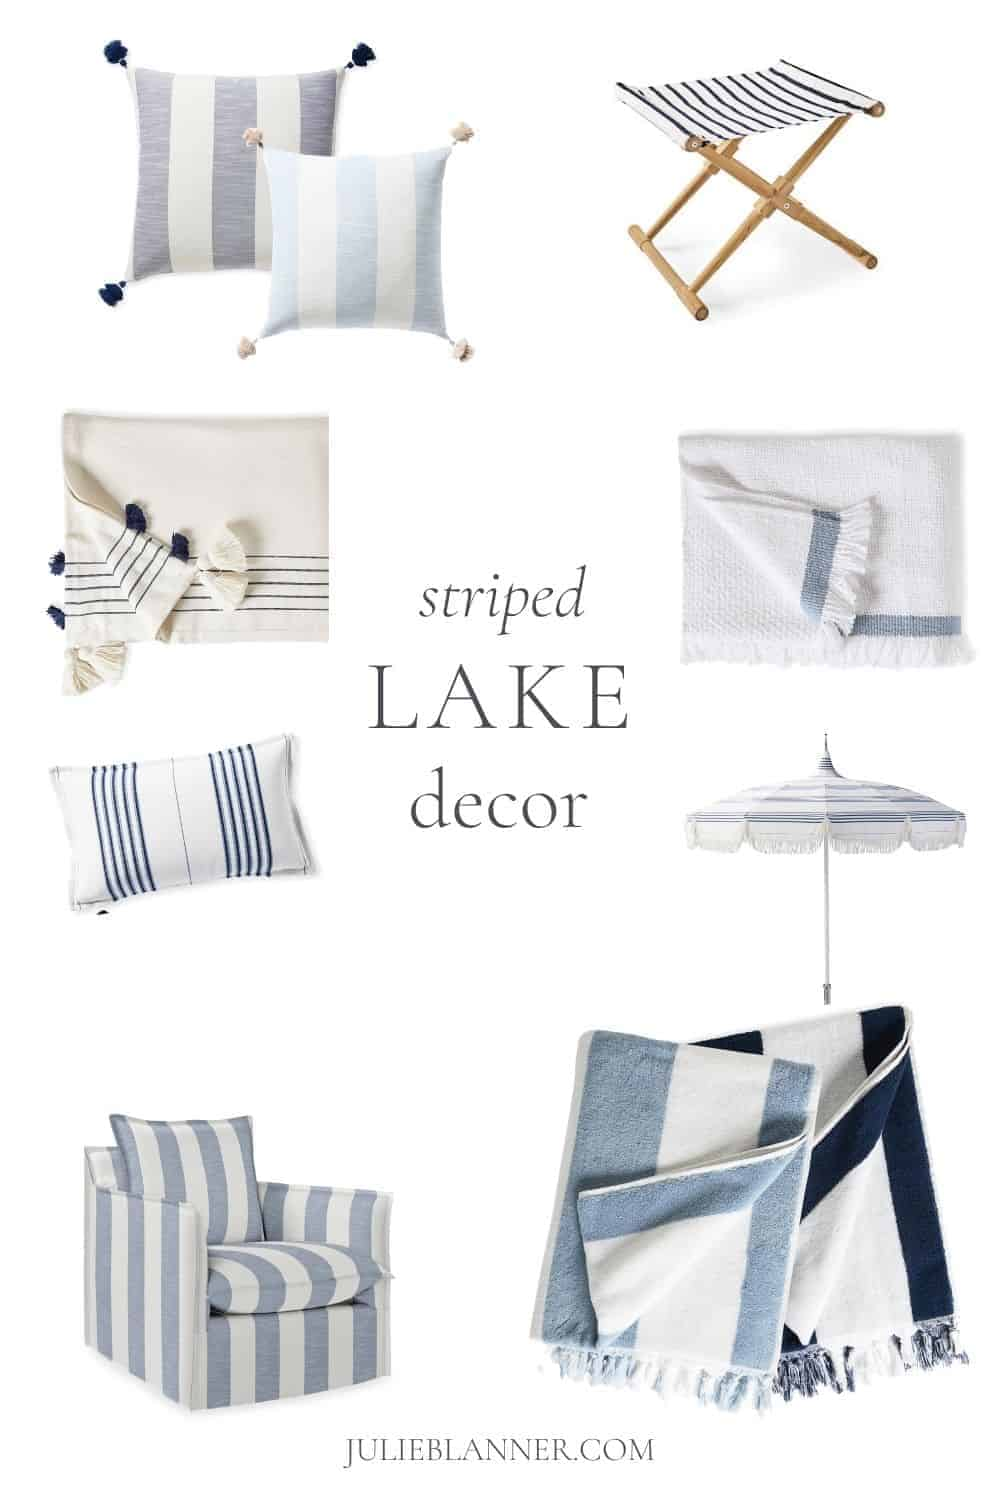 striped furniture and home decor in a collage with text overlay